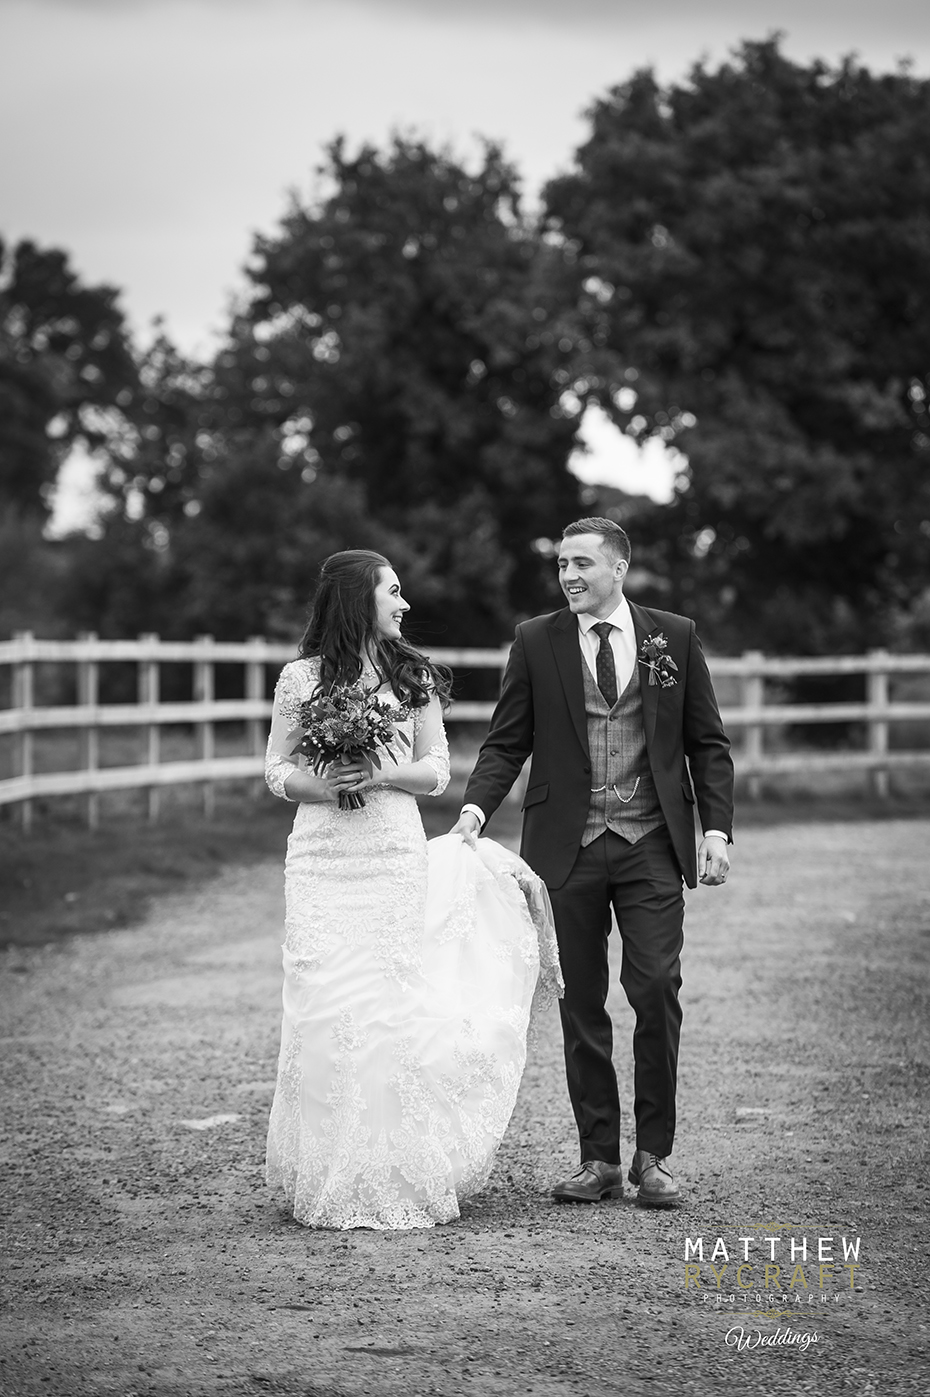 Bride and Groom Walking Wedding Photograph